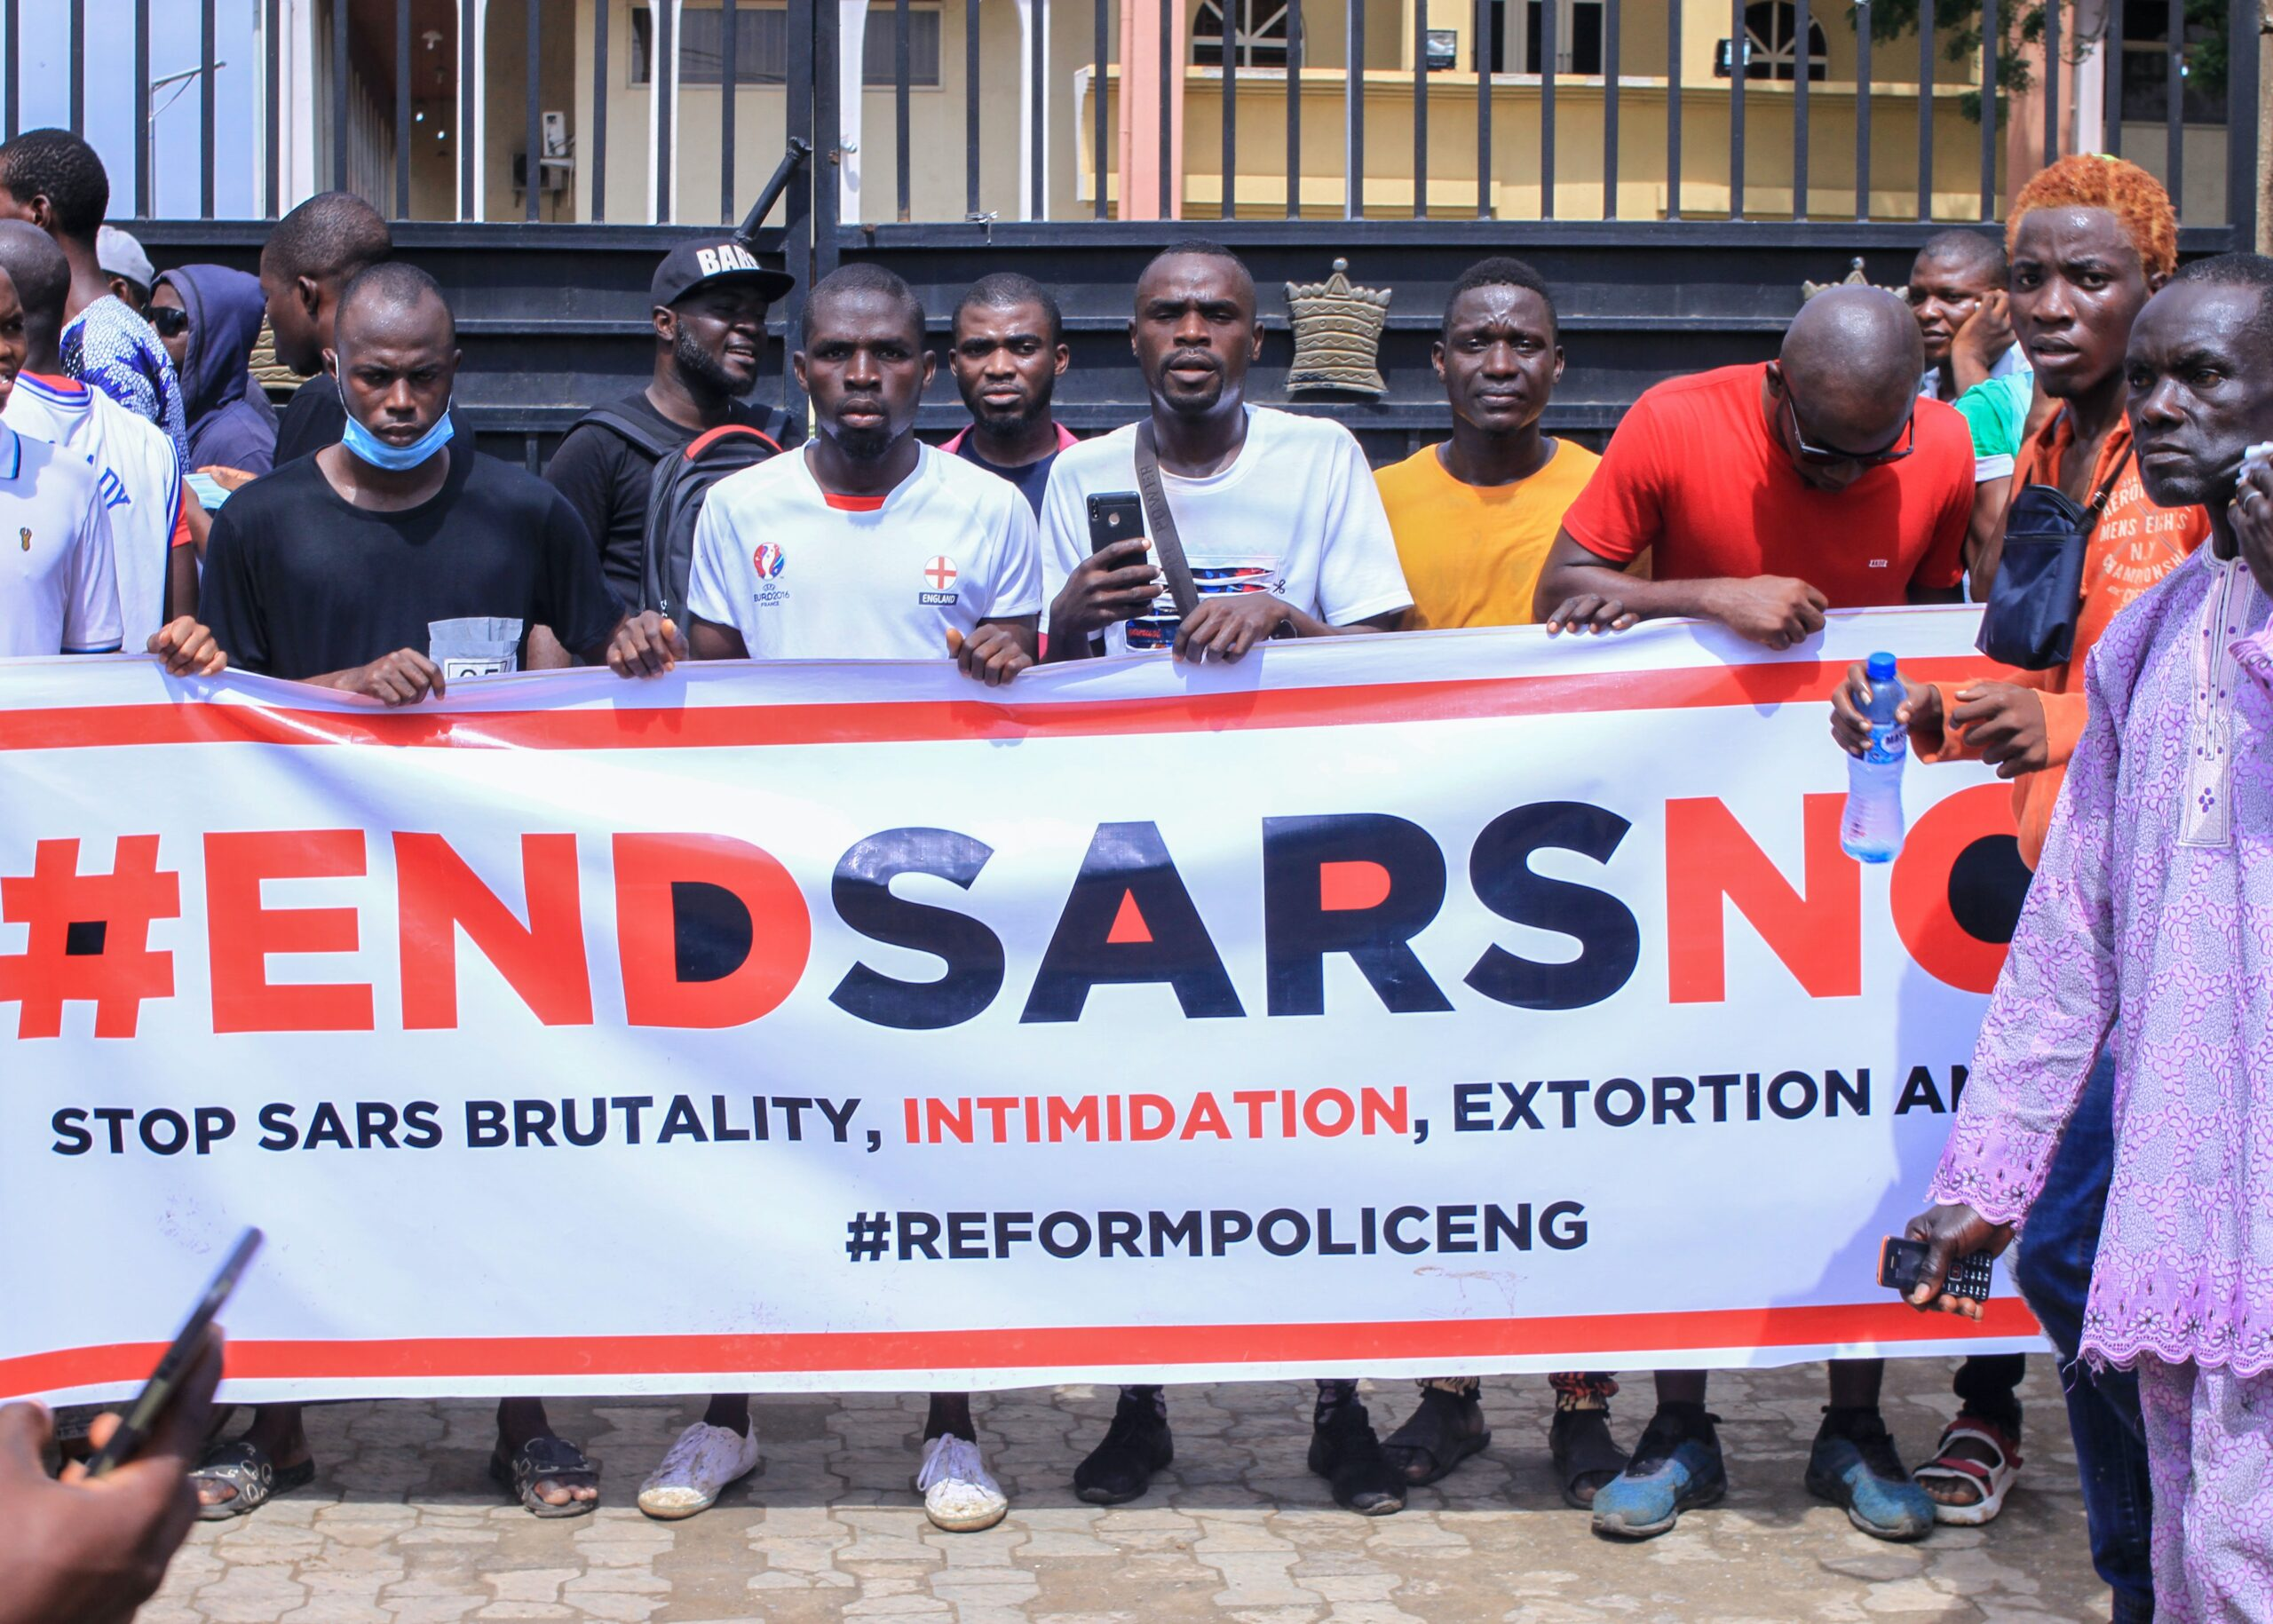 'End SARS' Nigeria's Fight Against Police Brutality.